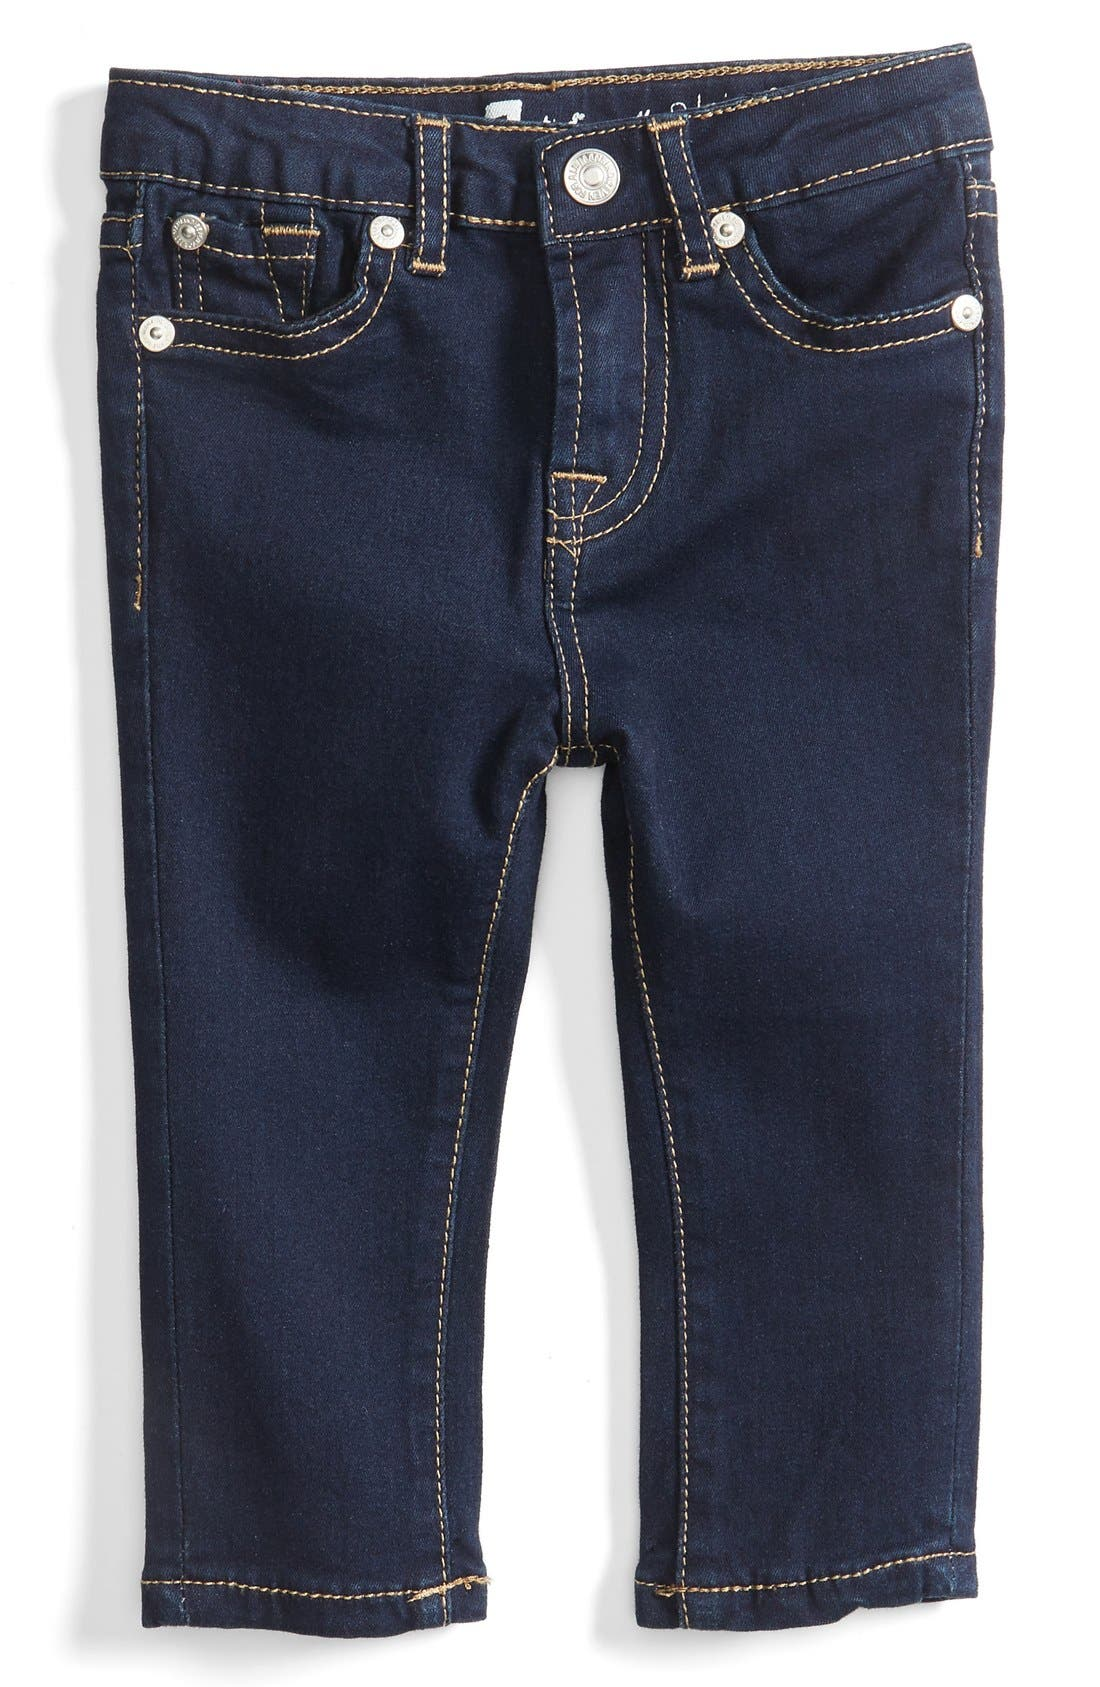 Skinny Fit Jeans,                         Main,                         color,